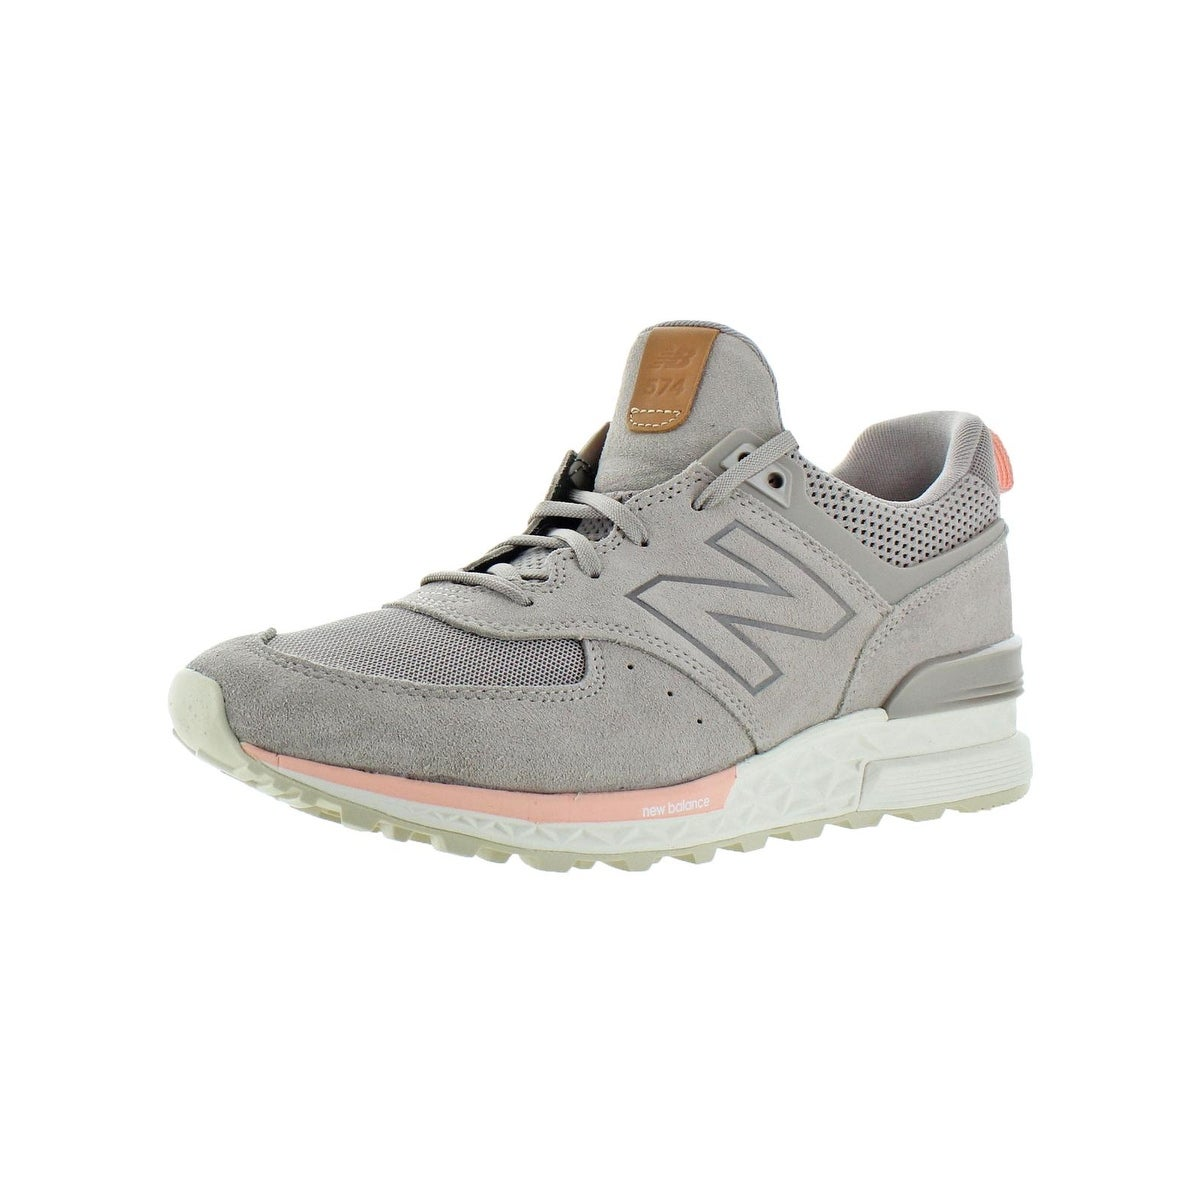 New Balance Womens 574 Sport Athletic Shoes Fresh Foam Lifestyle